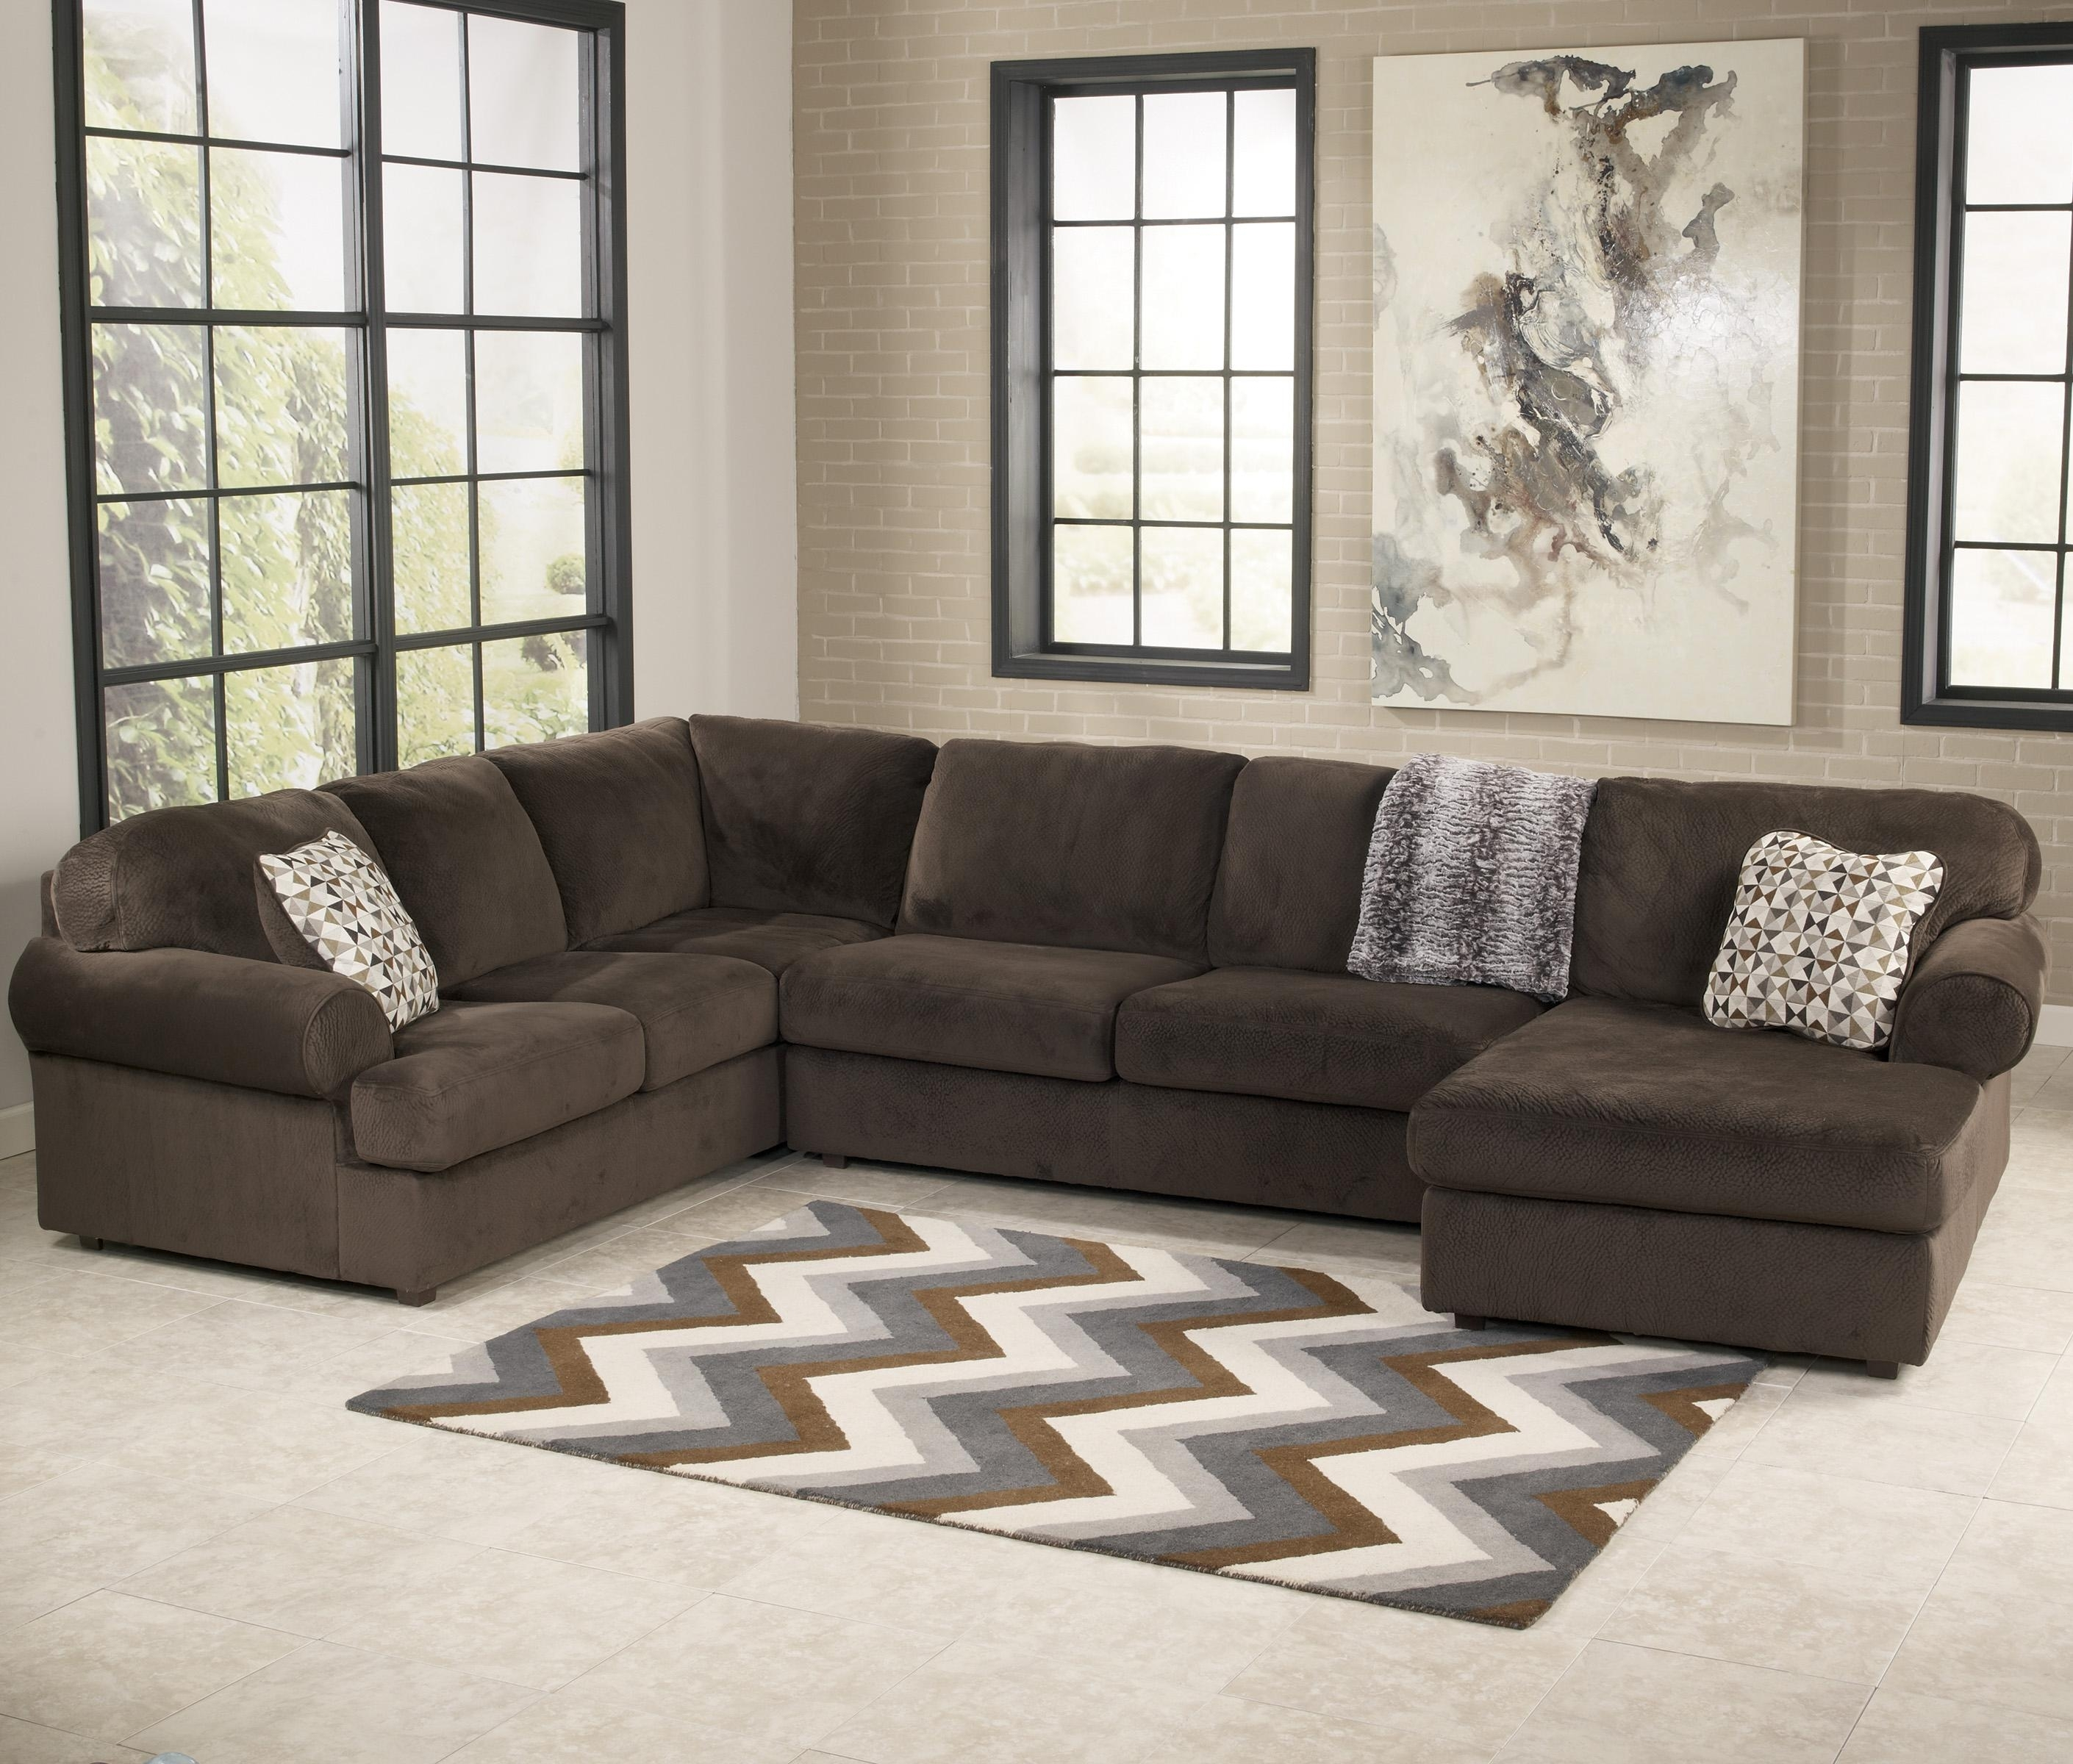 Signature Designashley Jessa Place - Chocolate Casual Sectional inside Jonesboro Ar Sectional Sofas (Image 9 of 10)